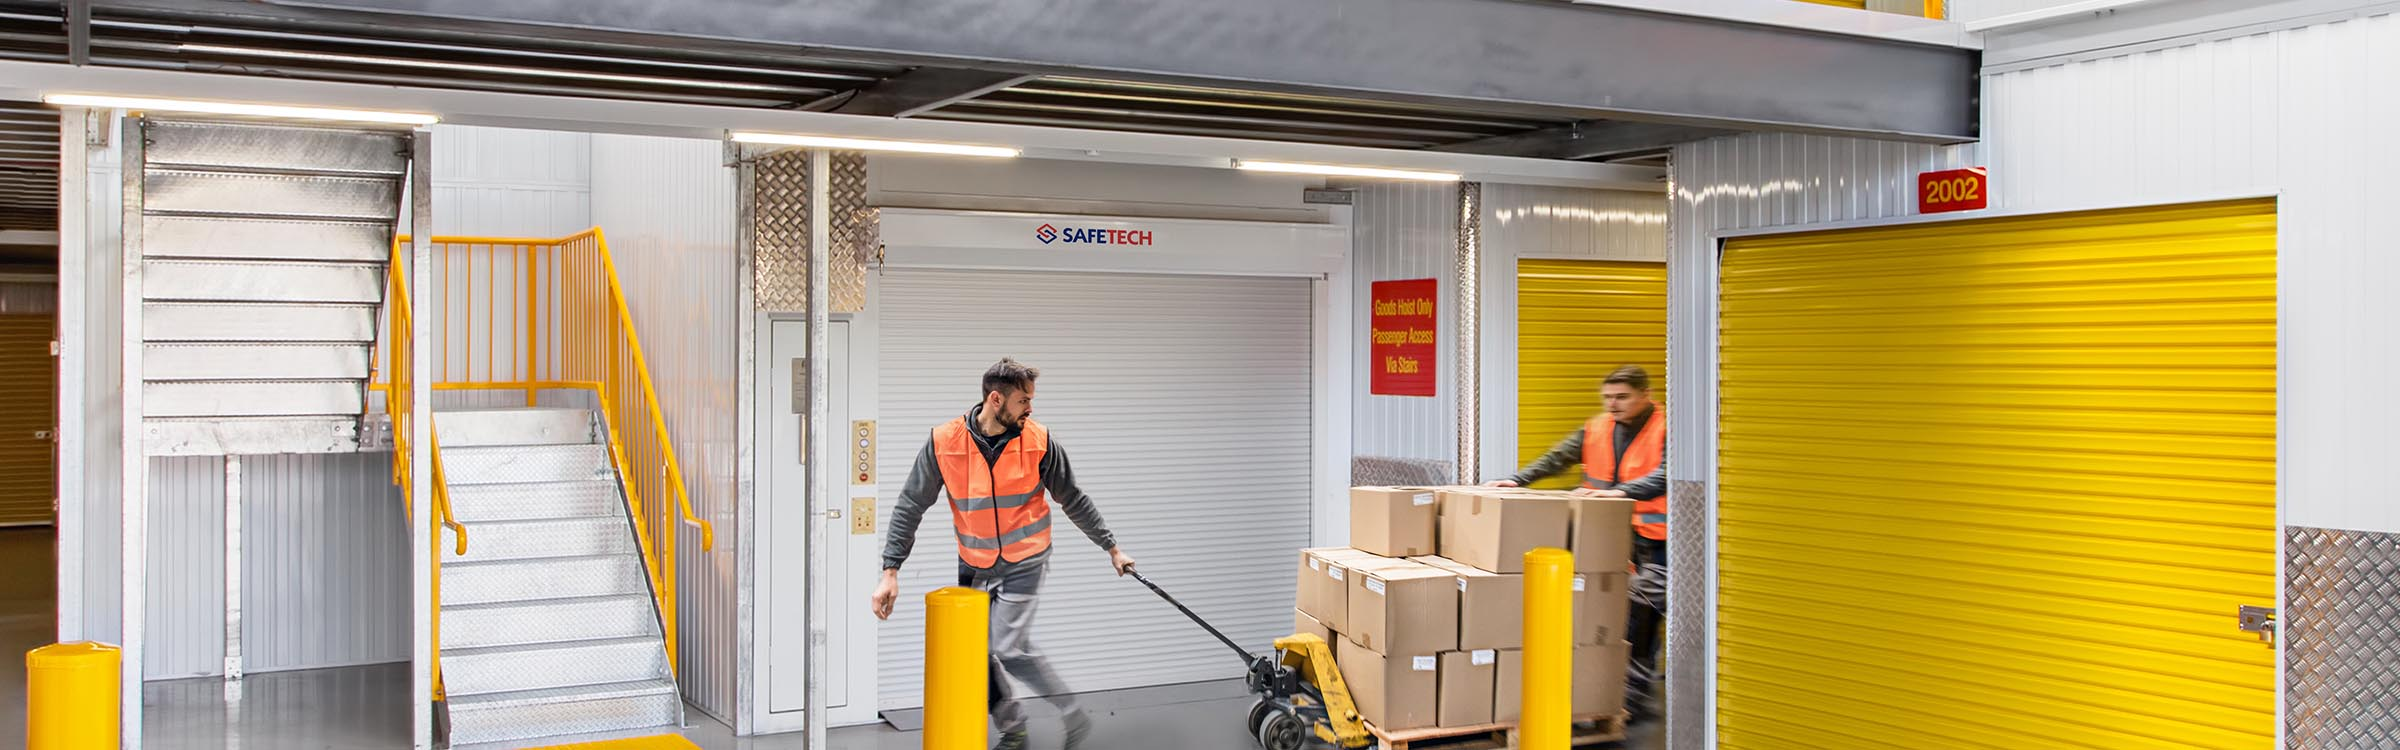 Safetech Freight Hoist in action